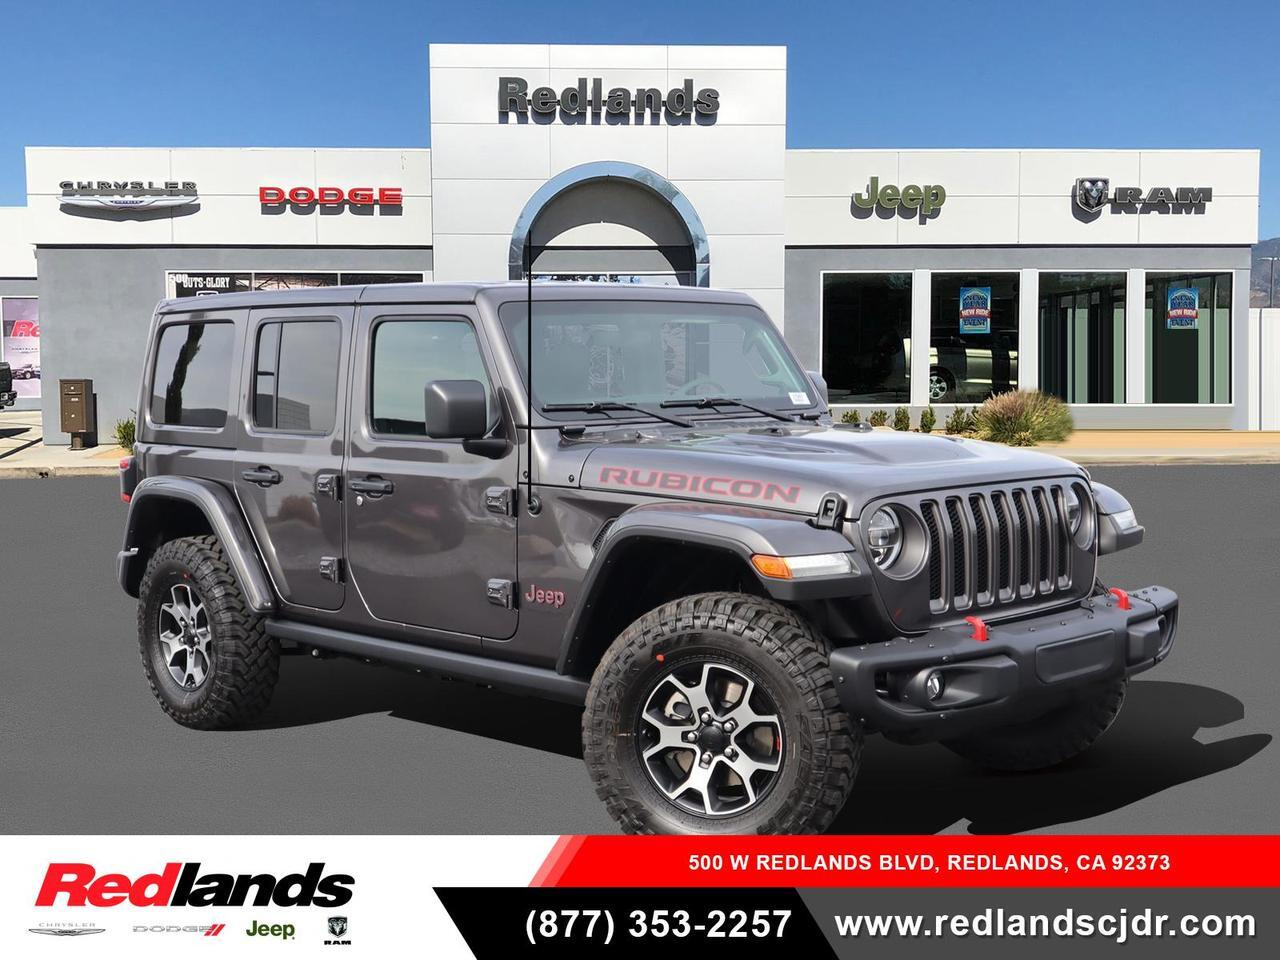 2021 Jeep Wrangler Rubicon Redlands CA